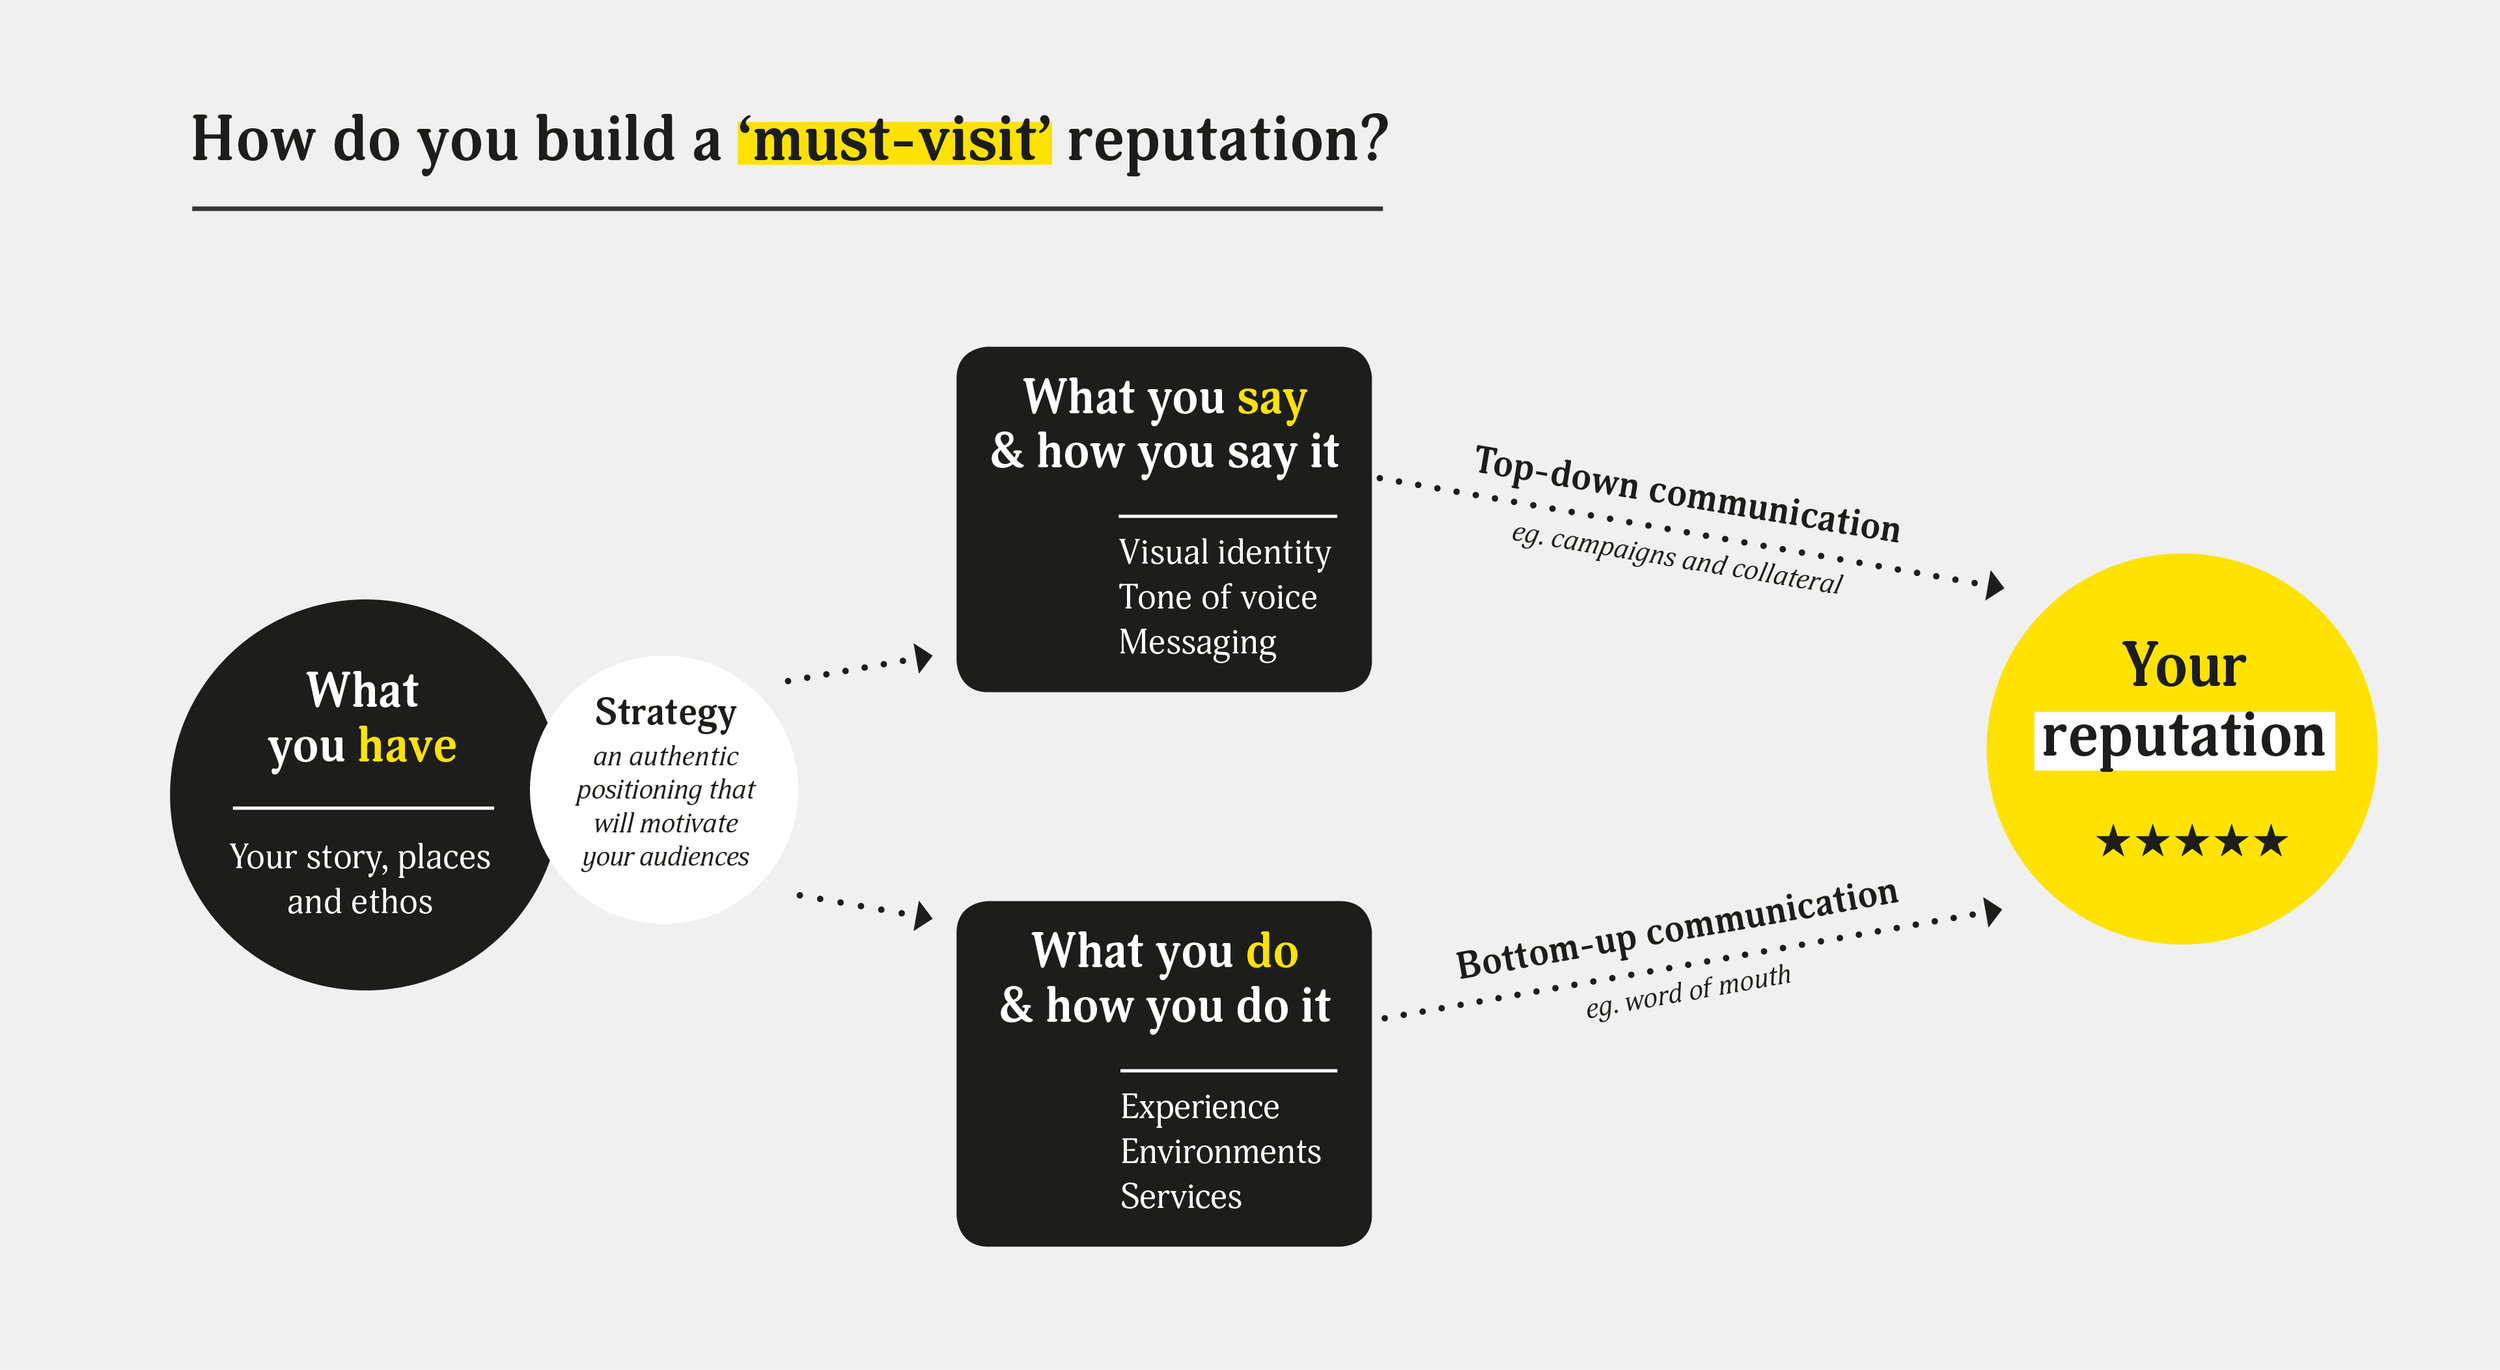 How do you build a must-visit reputation infographic